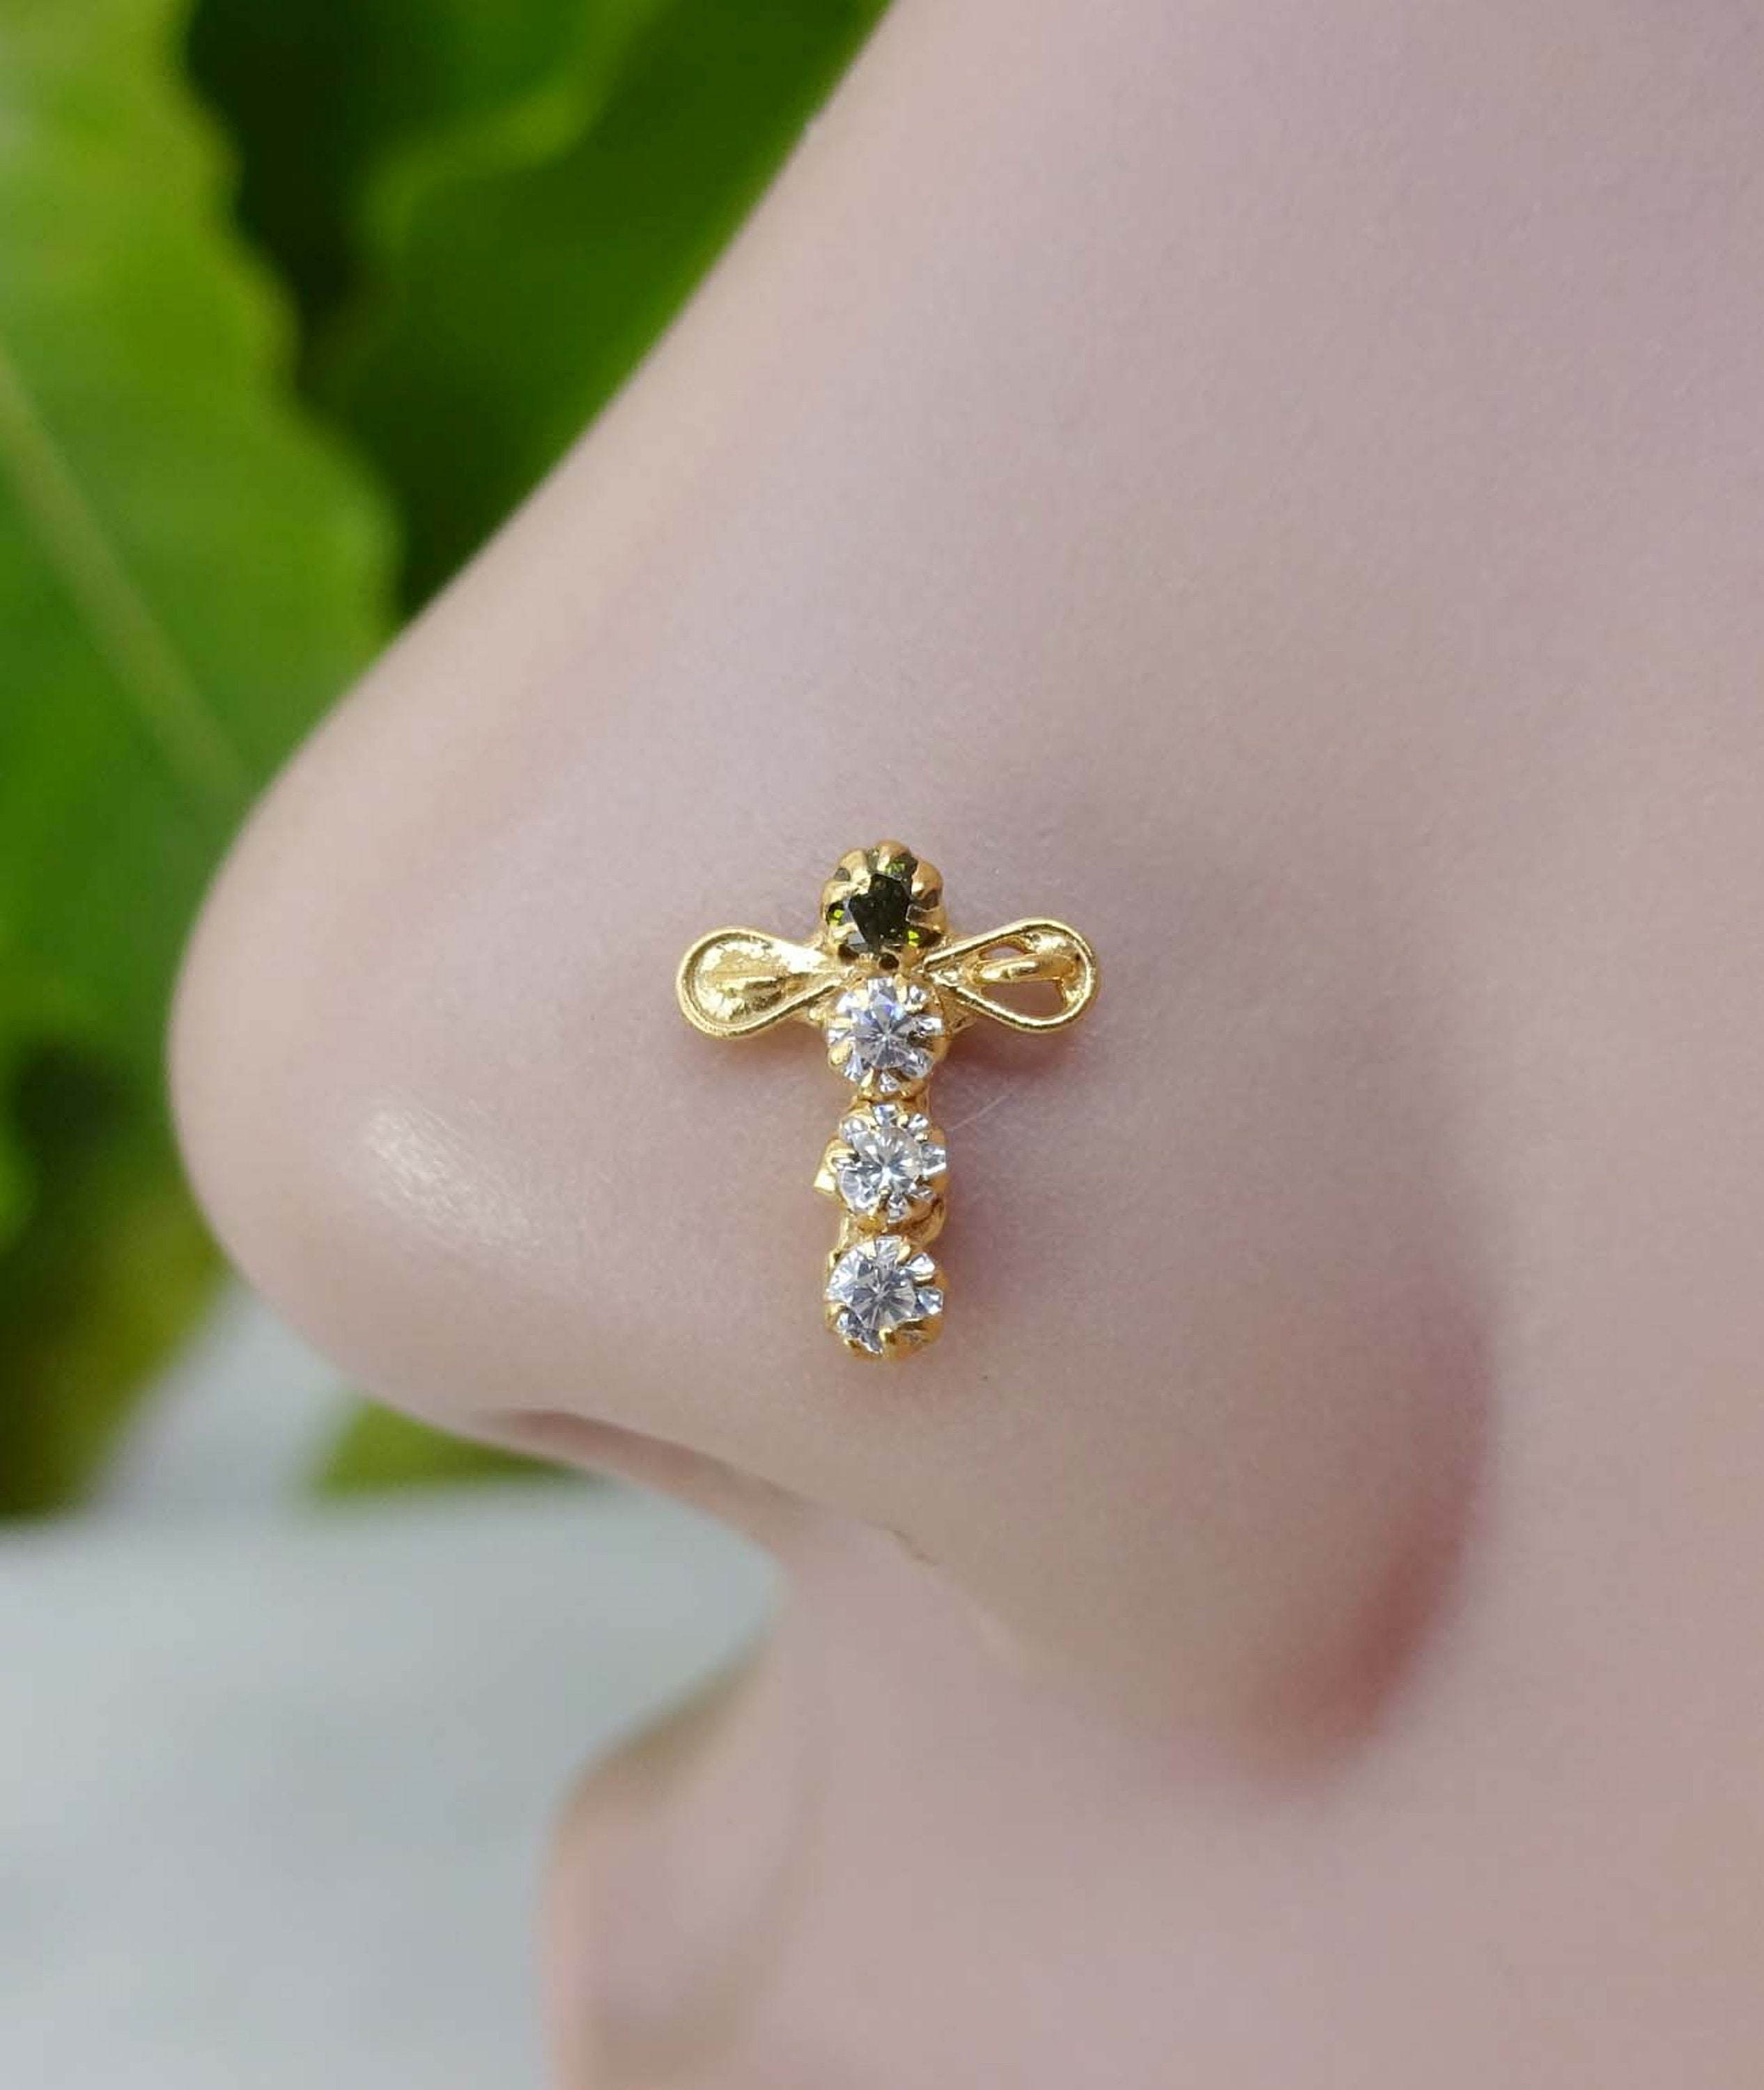 Nose Stud Gold Nose Jewelry Back Screw Nose Stud Nose Ring Etsy